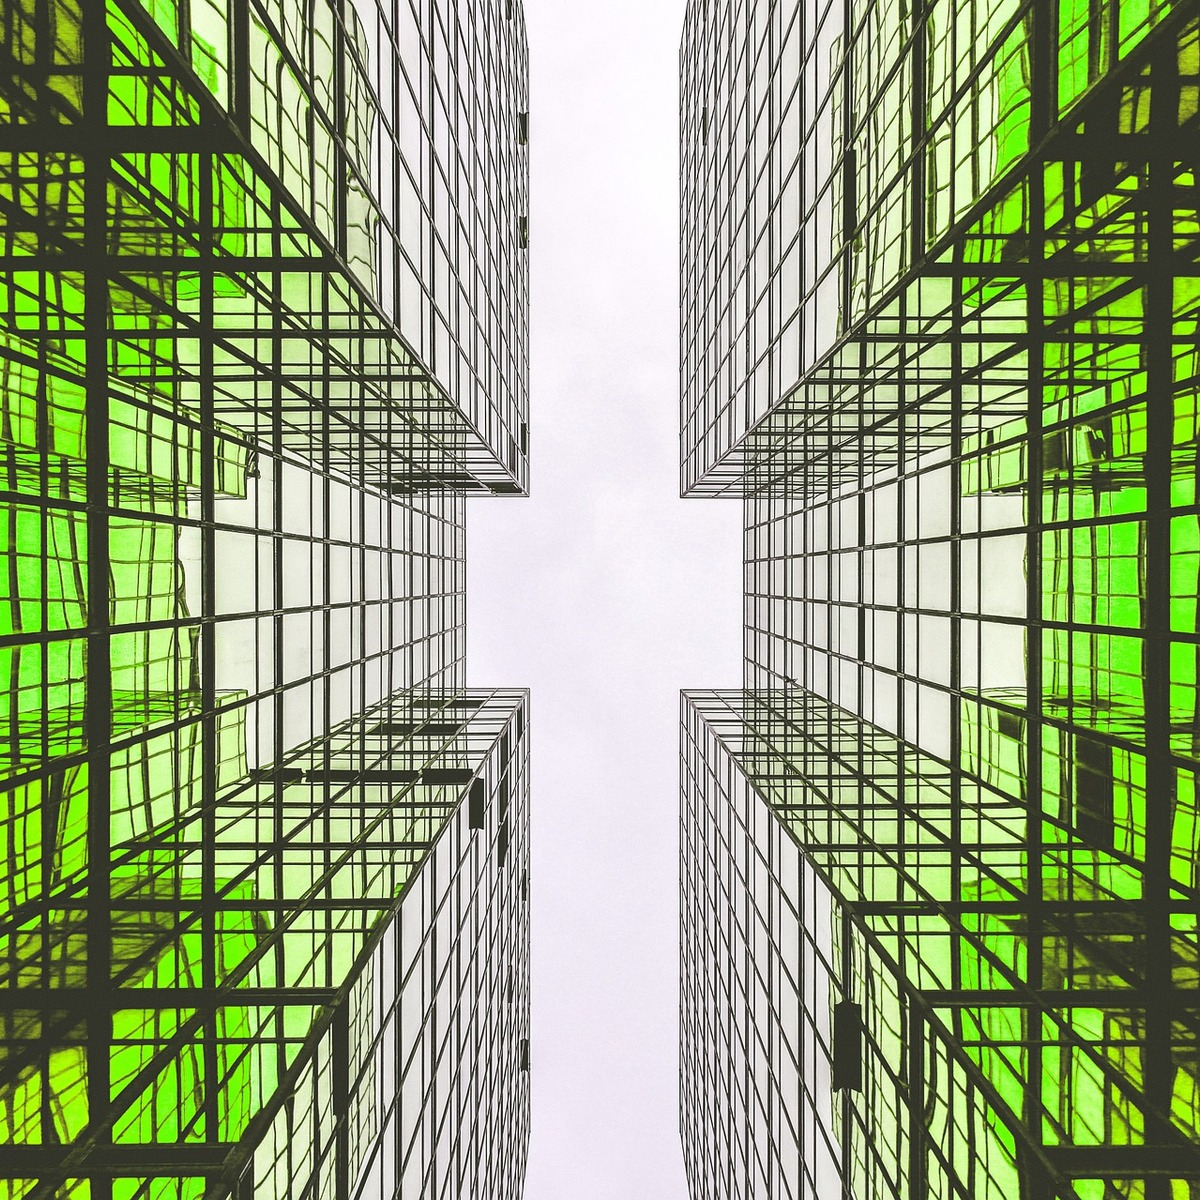 Free Online Course: Renewable Energy and Green Building